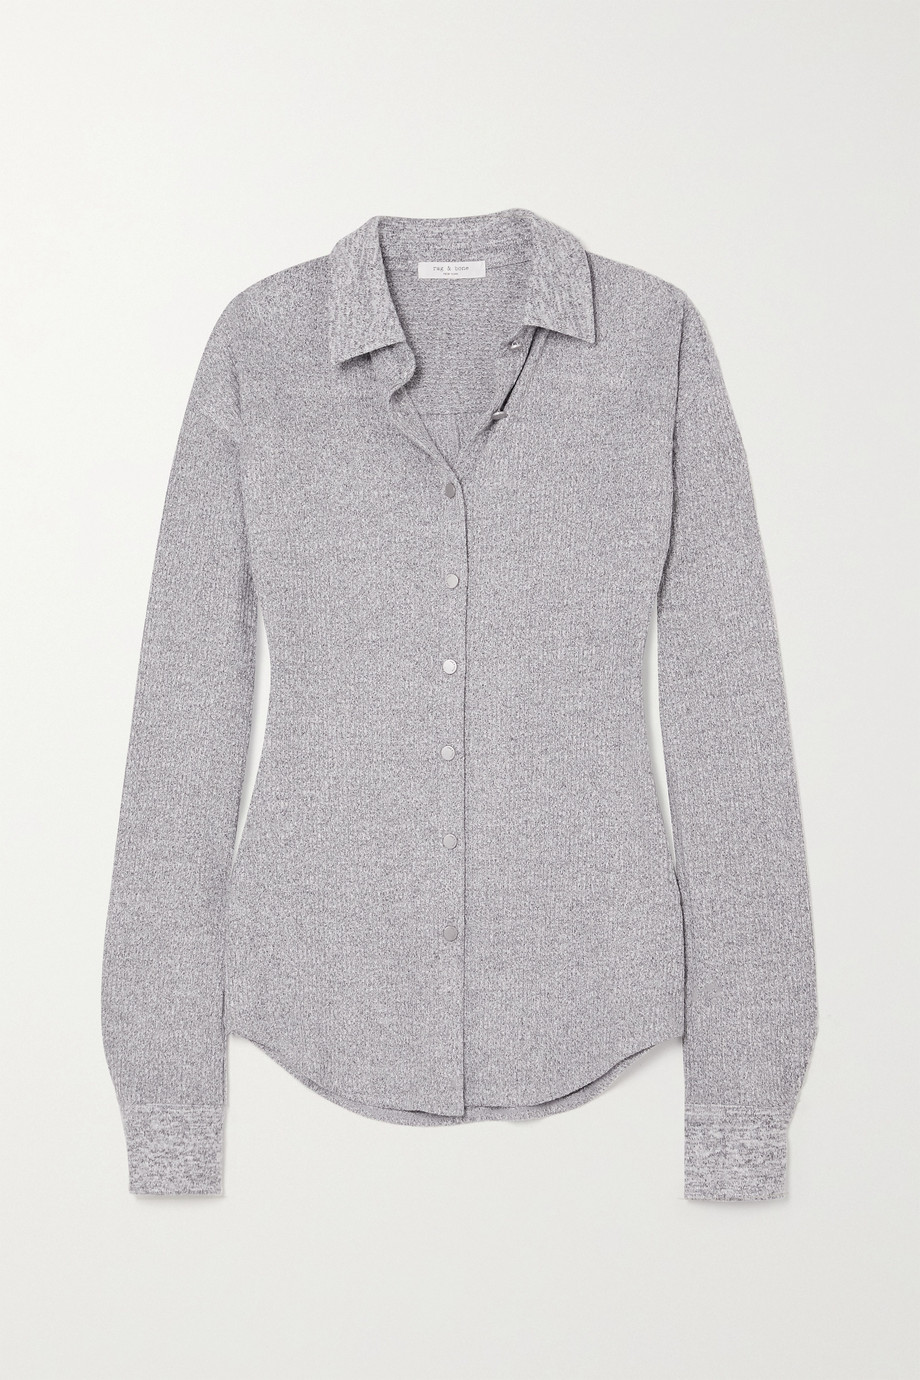 RAG & BONE Ribbed mélange stretch-knit shirt